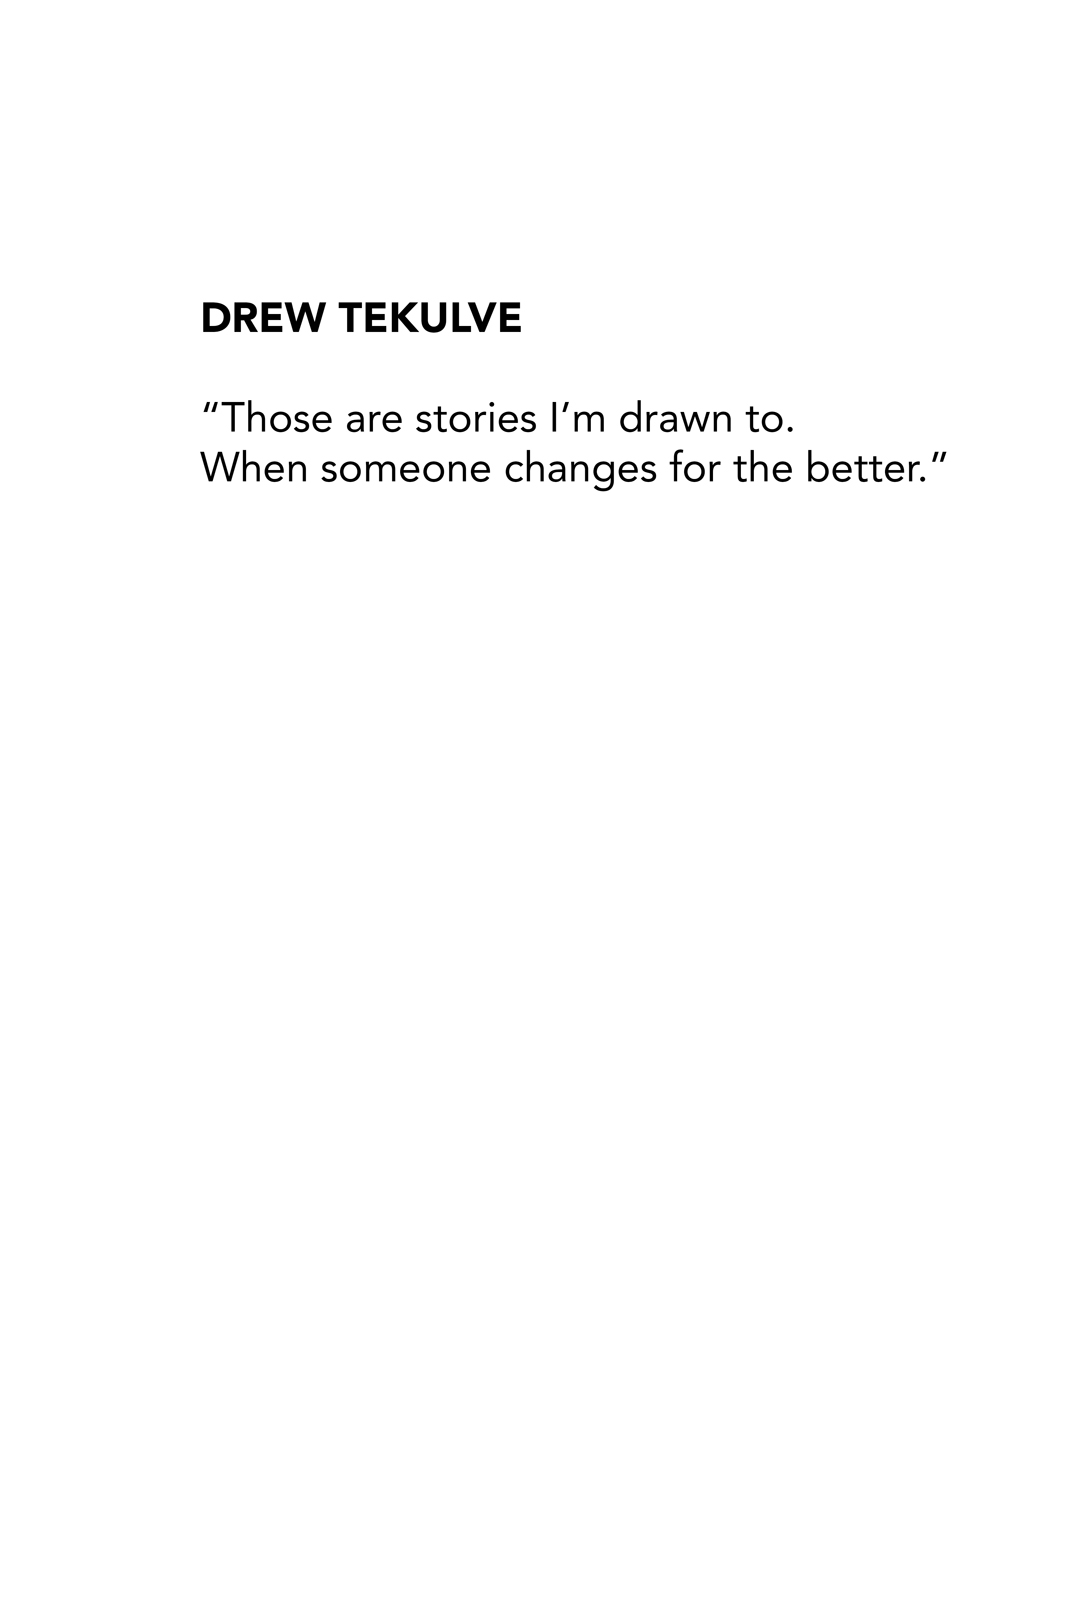 Drew Tekulve Quote.jpg